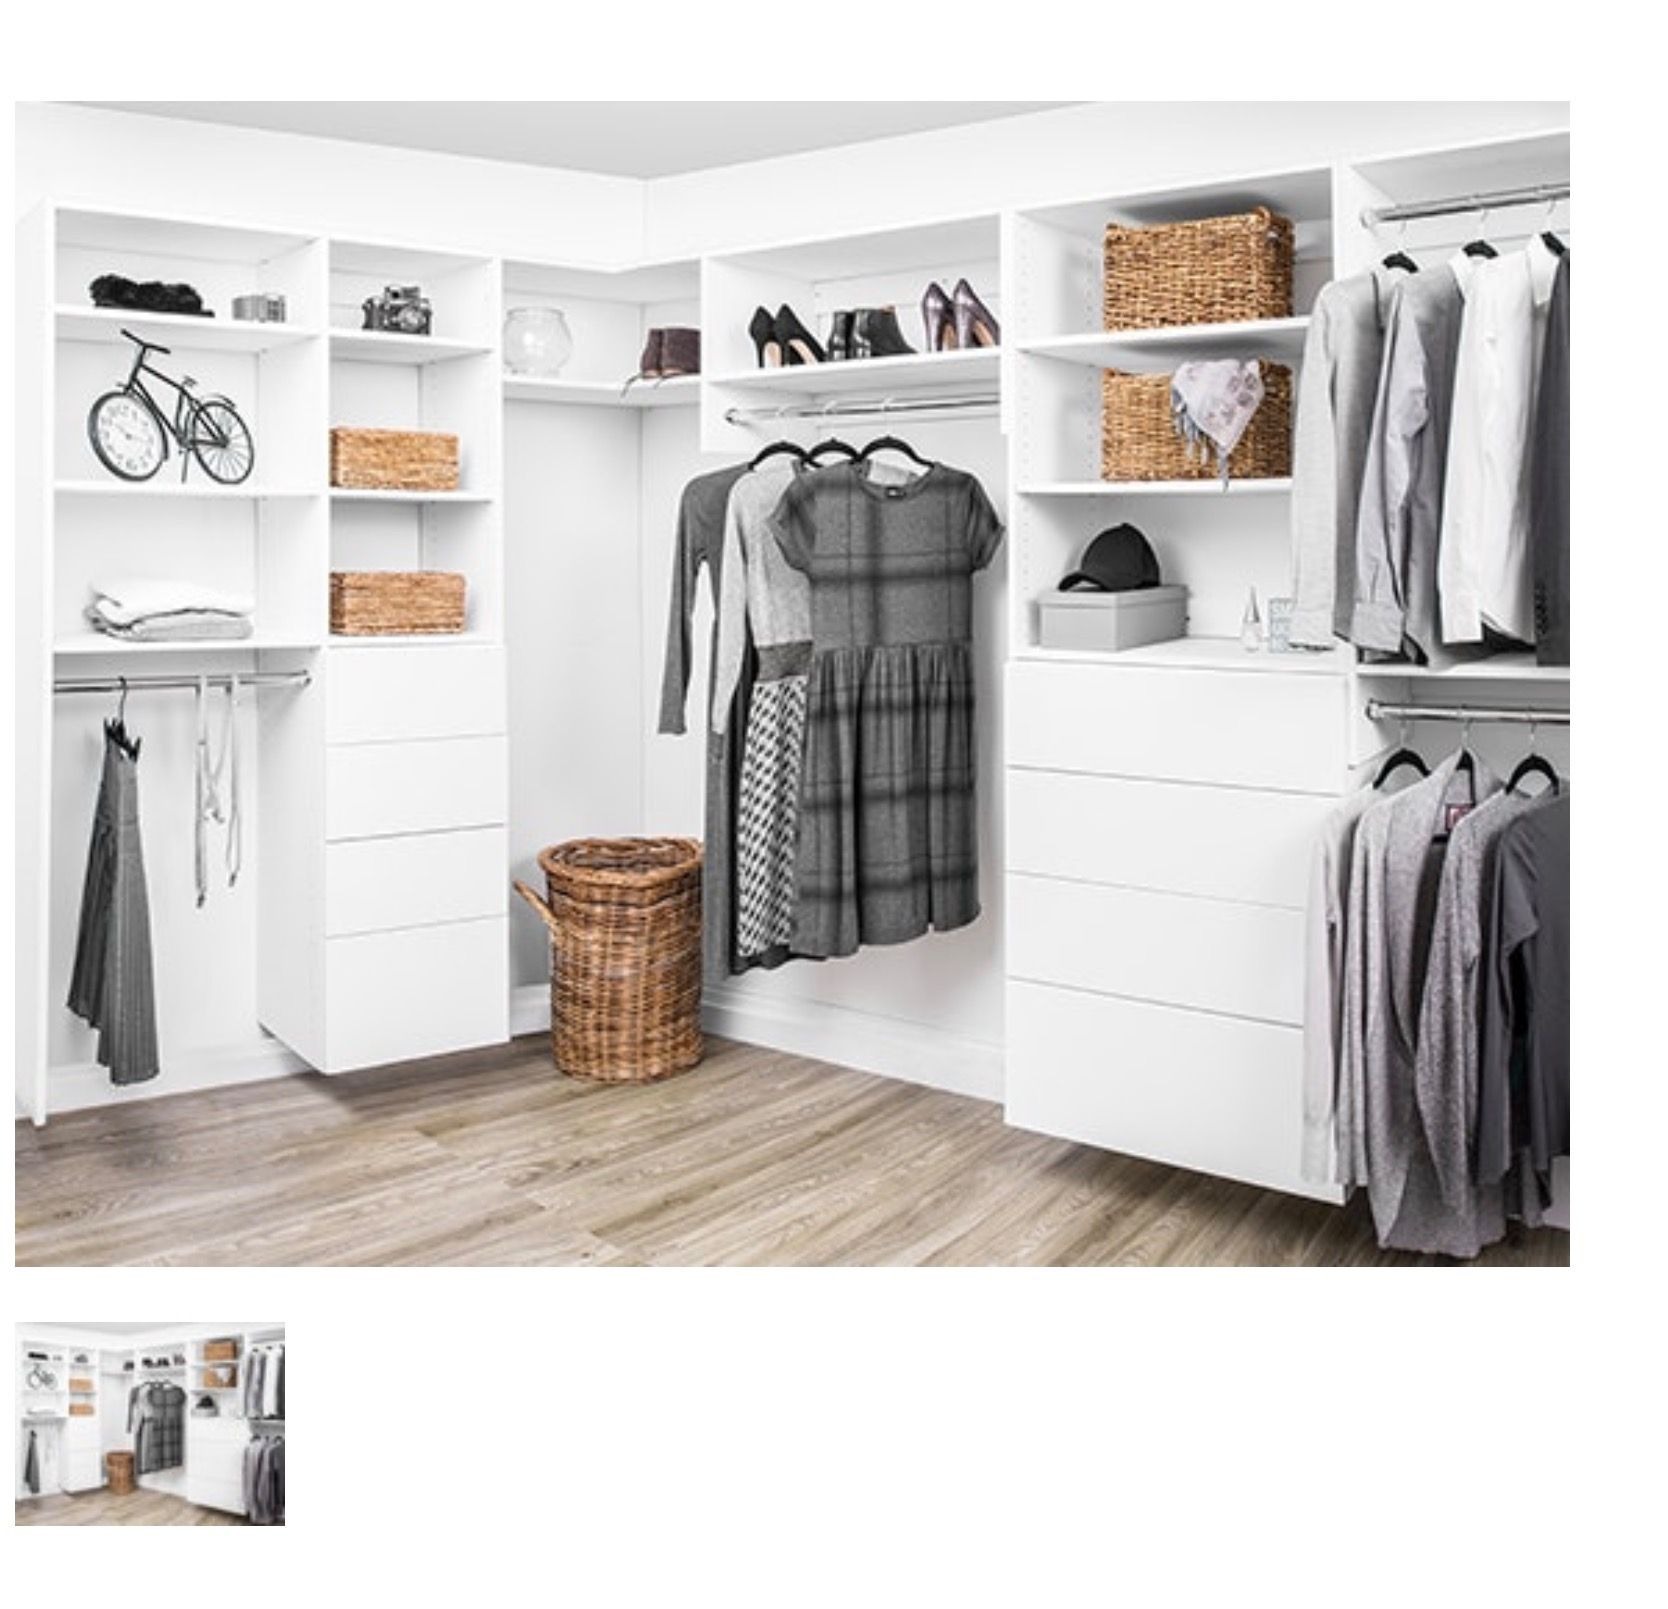 Pin by Sharon Vorrath on Bedrooms / Closets Modular